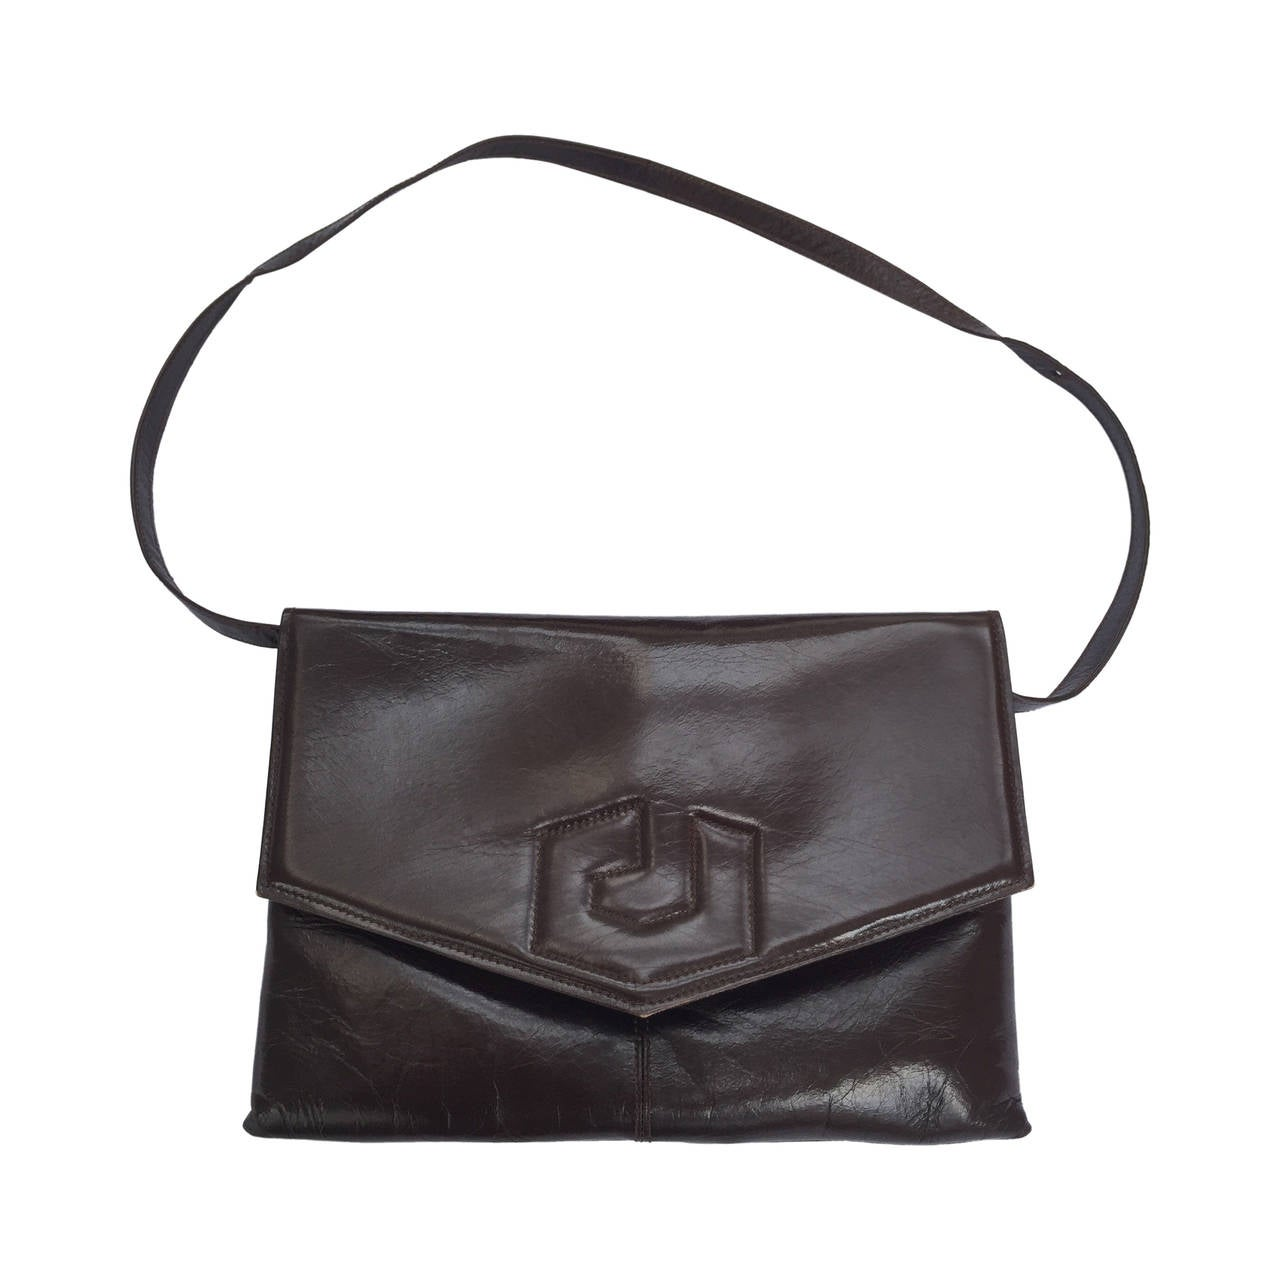 Charles Jourdan 70s brown leather shoulder / clutch handbag.